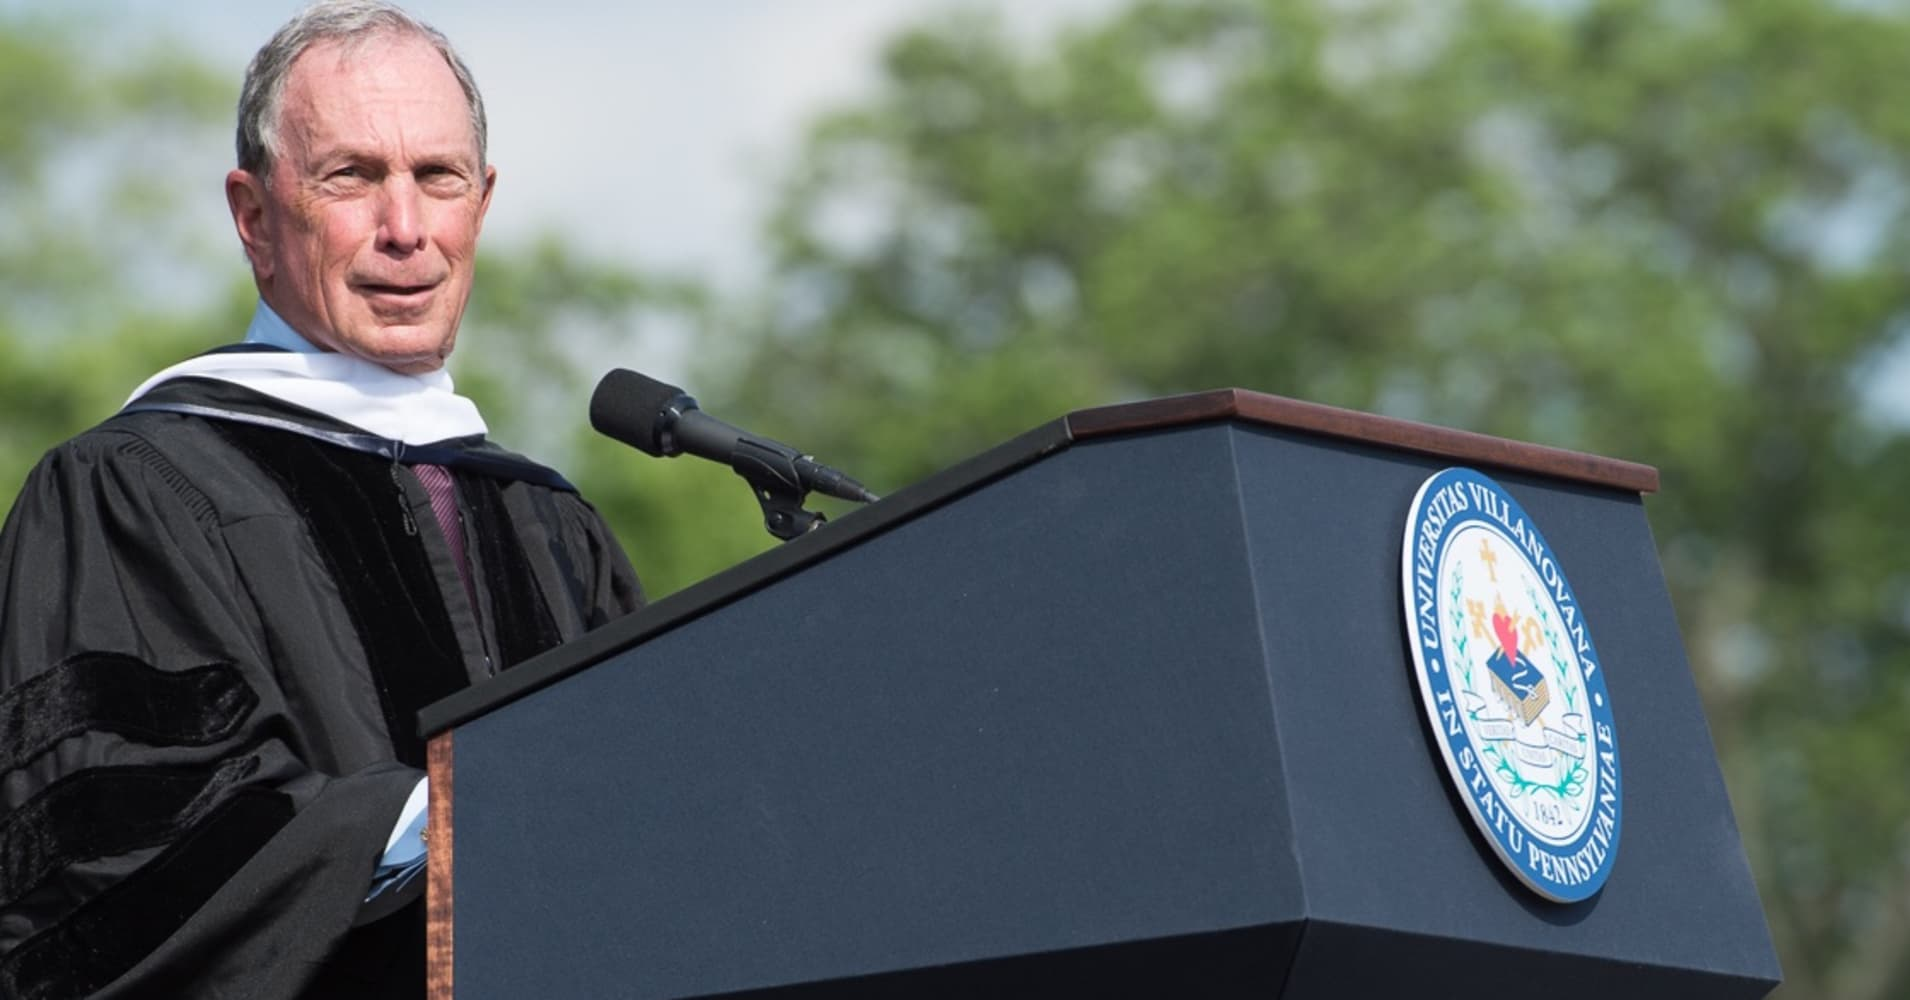 Michael Bloomberg, former Mayor of New York and founder of Bloomberg LP, speaks to the class of 2017 at Villanova University.